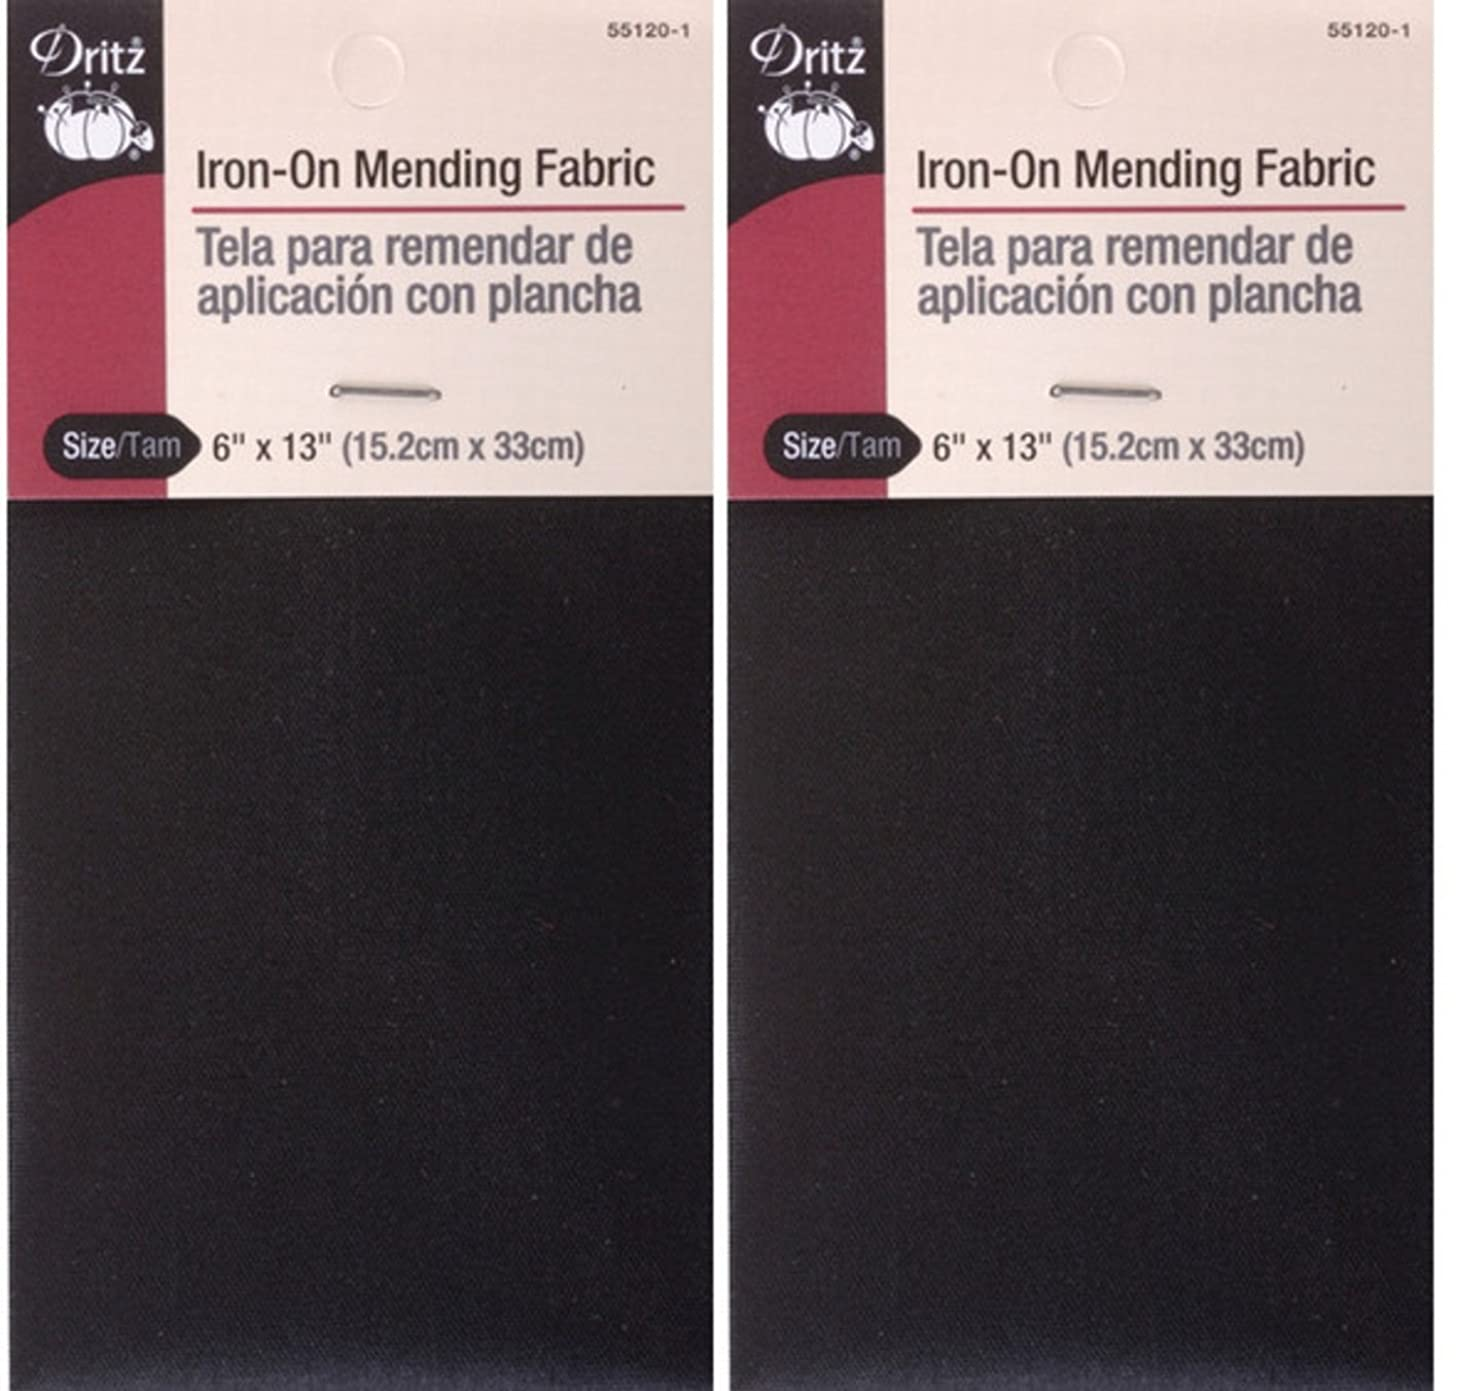 Dritz 55120-1 Iron-On Mending Fabric, Black, 6 by 13-Inch (2 Pack)